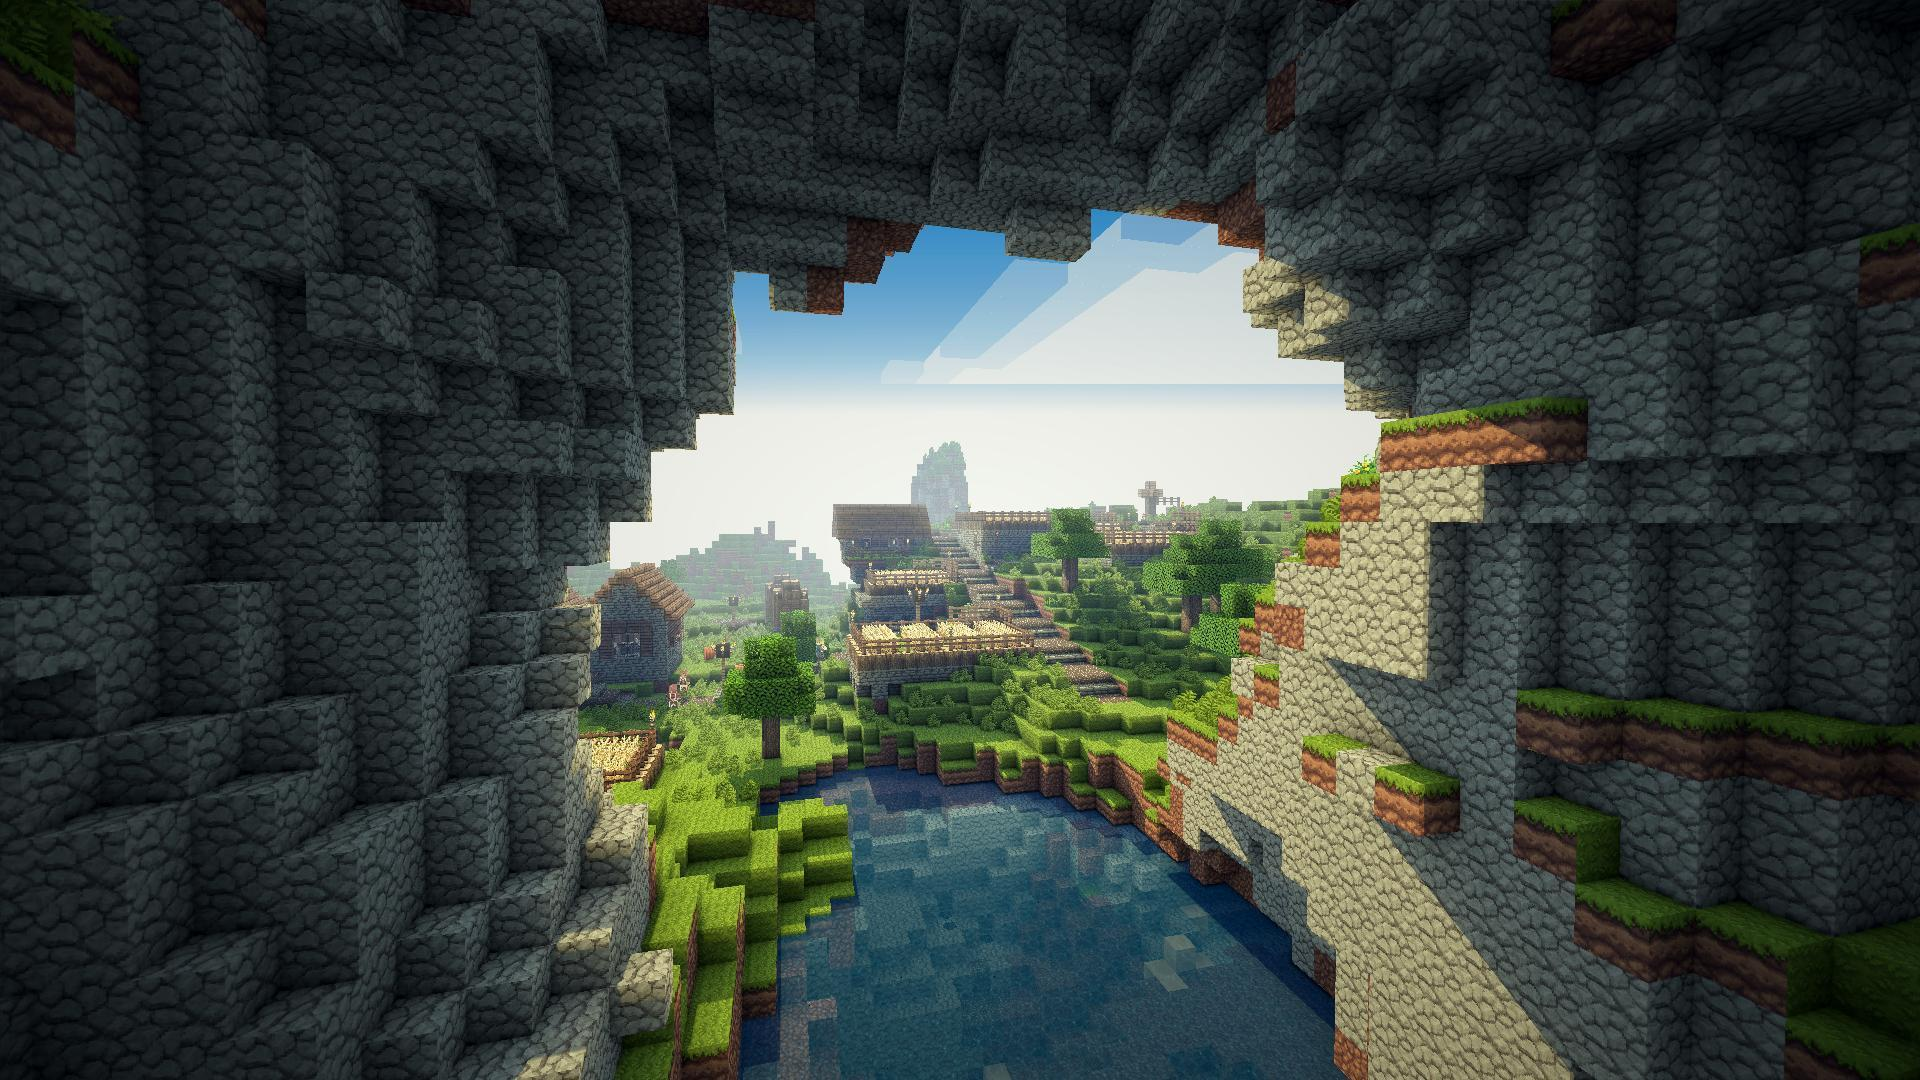 Minecraft Backgrounds HD 1920x1080